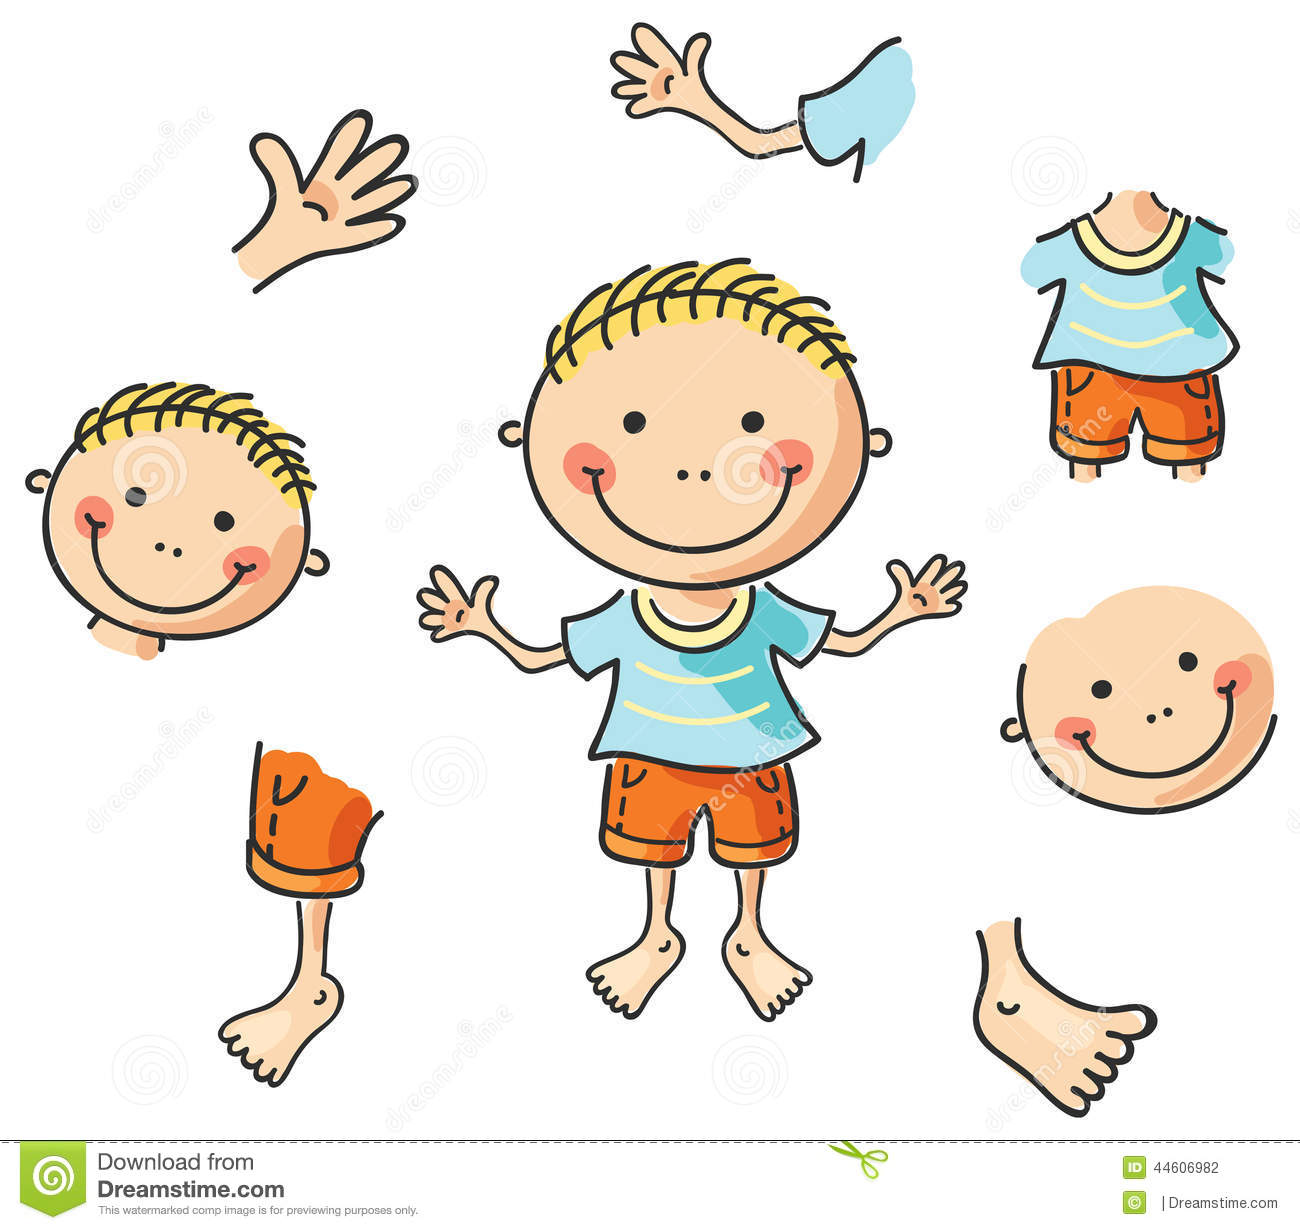 Clip Art Body Clip Art cartoon body clipart kid parts stock vector image 44606982